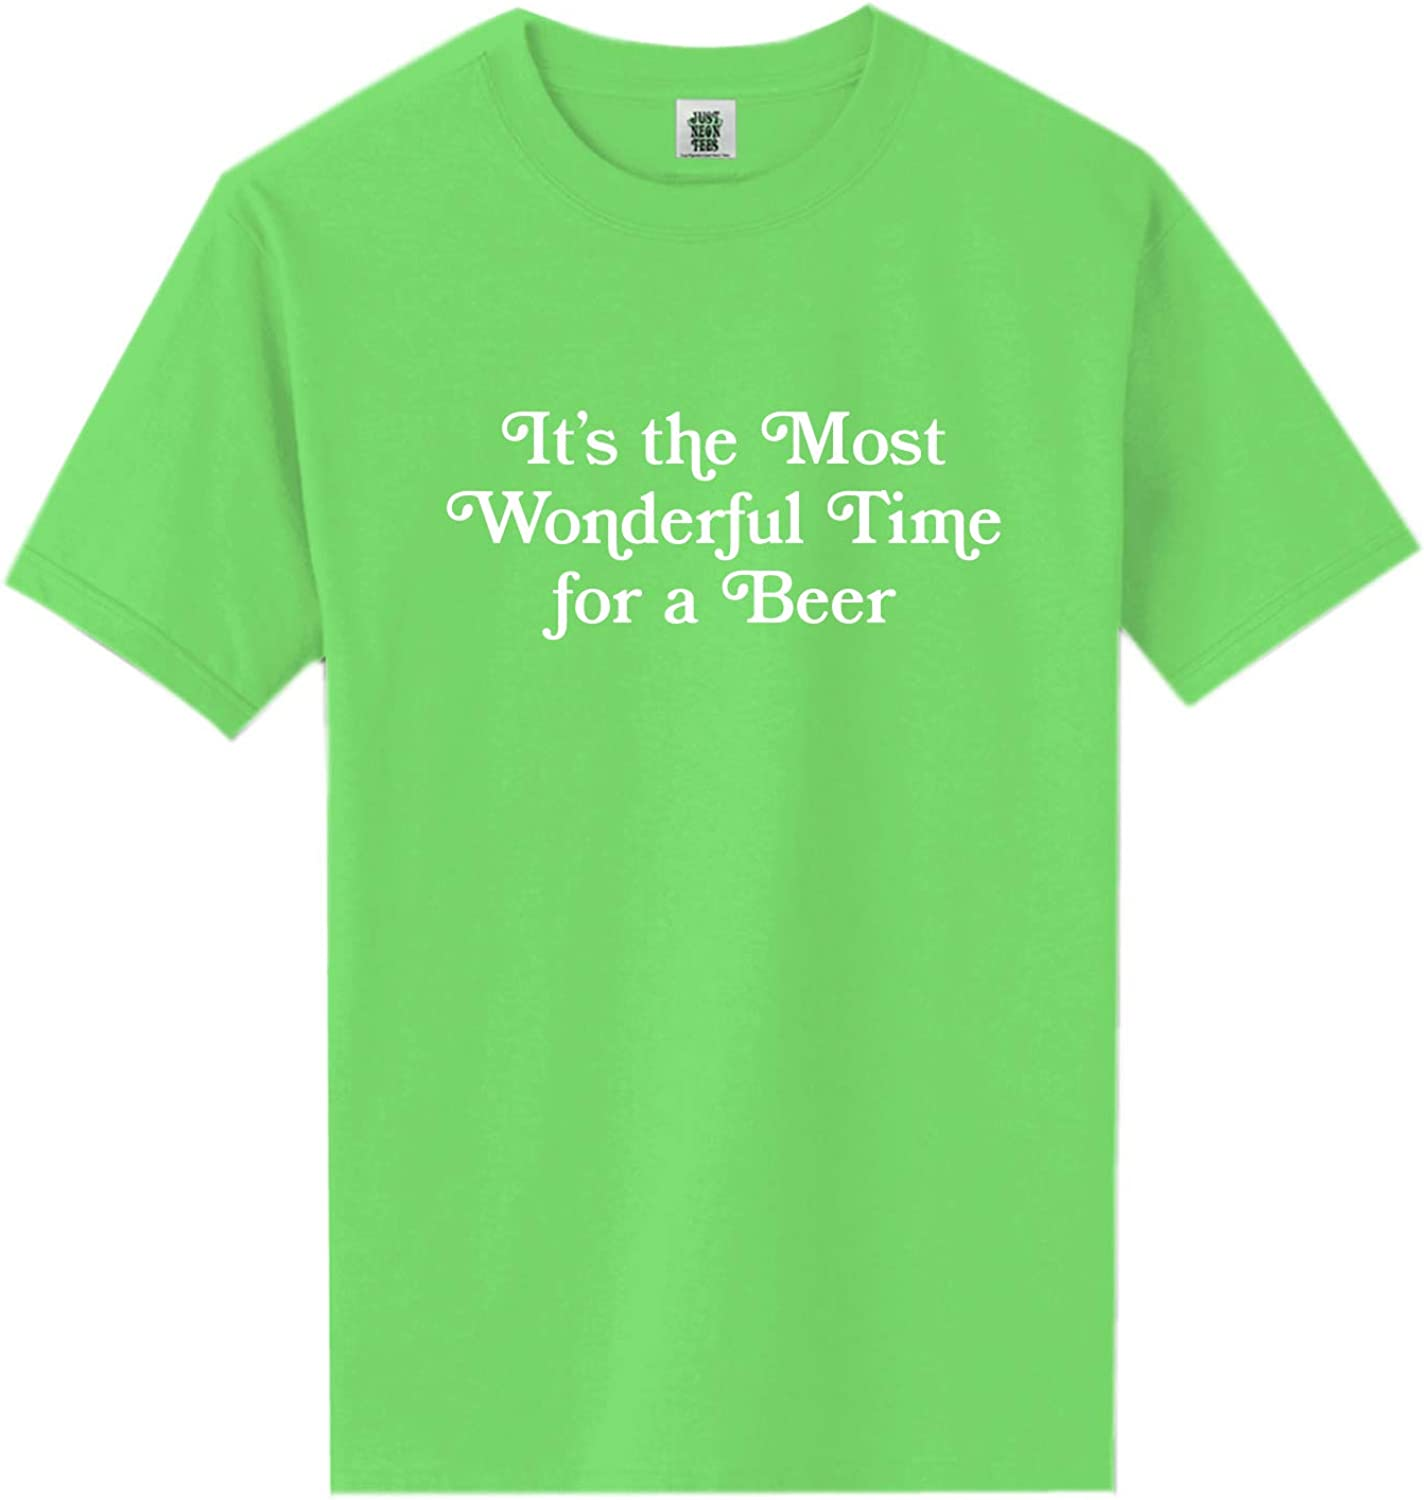 It's The Most Wonderful Time Neon Green Short Sleeve T-Shirt - XX-Large